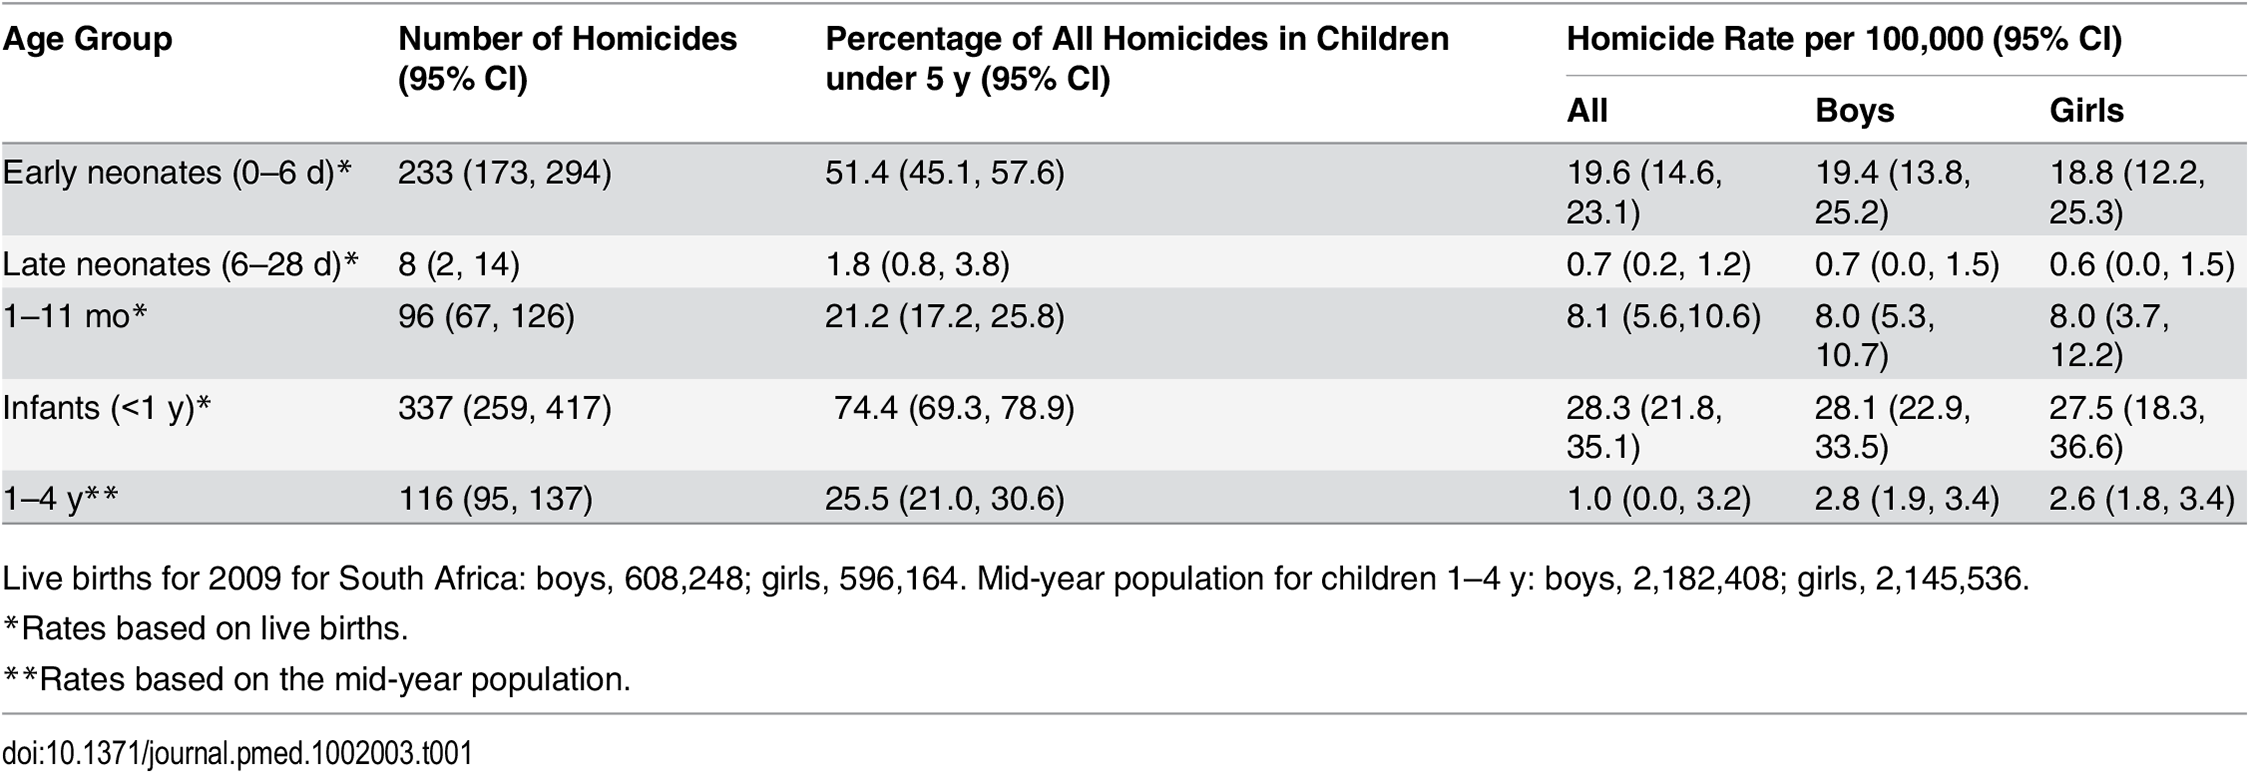 Estimated age-specific homicide rates per 100,000 live births for children under 5 y.